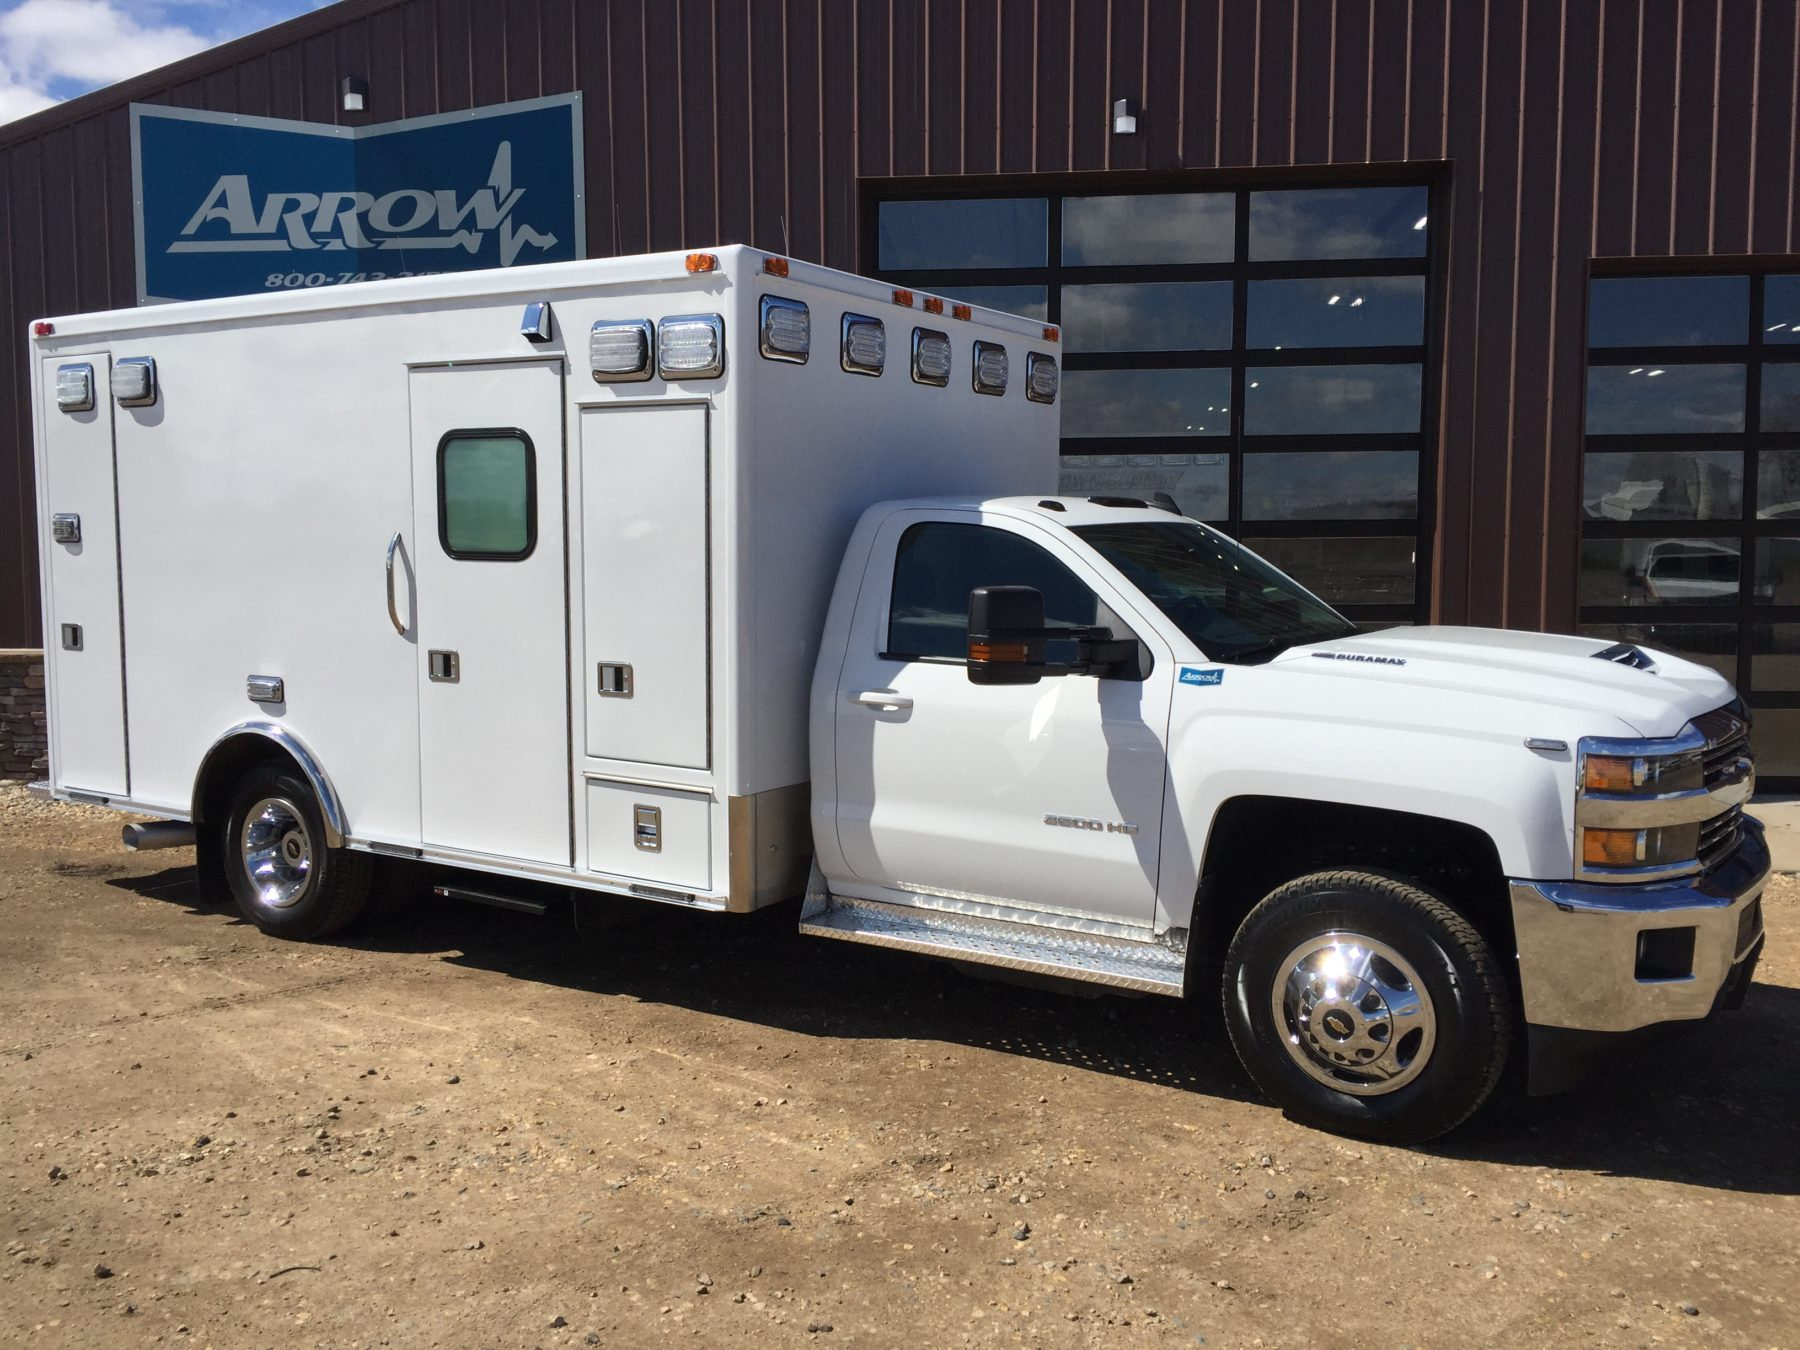 2017 Chevrolet K3500 4x4 Type 1 Ambulance For Sale – Picture 1